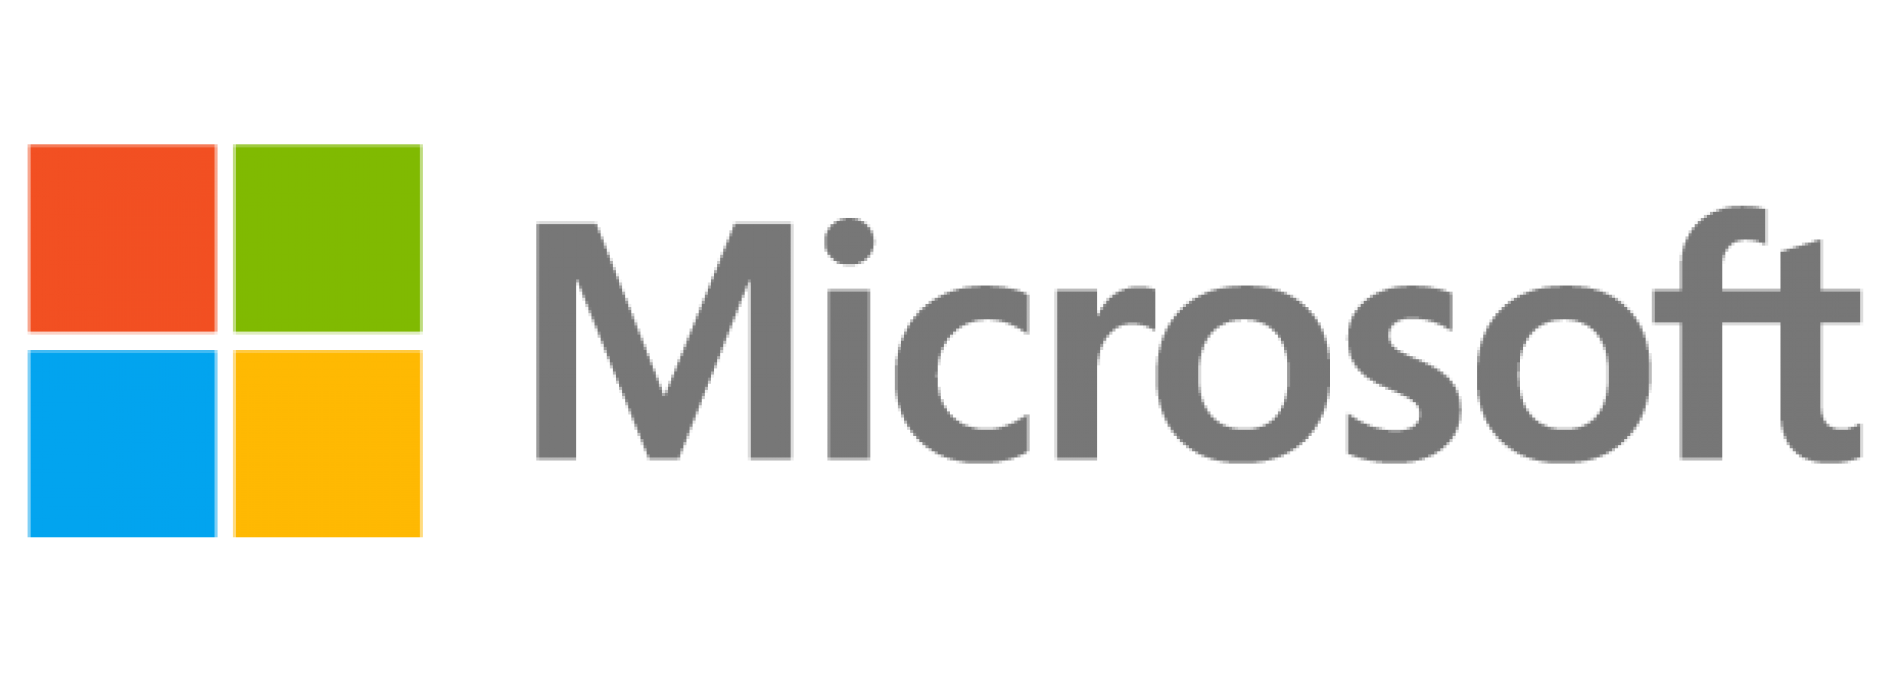 Is Microsoft to acquire the struggling chip maker AMD???